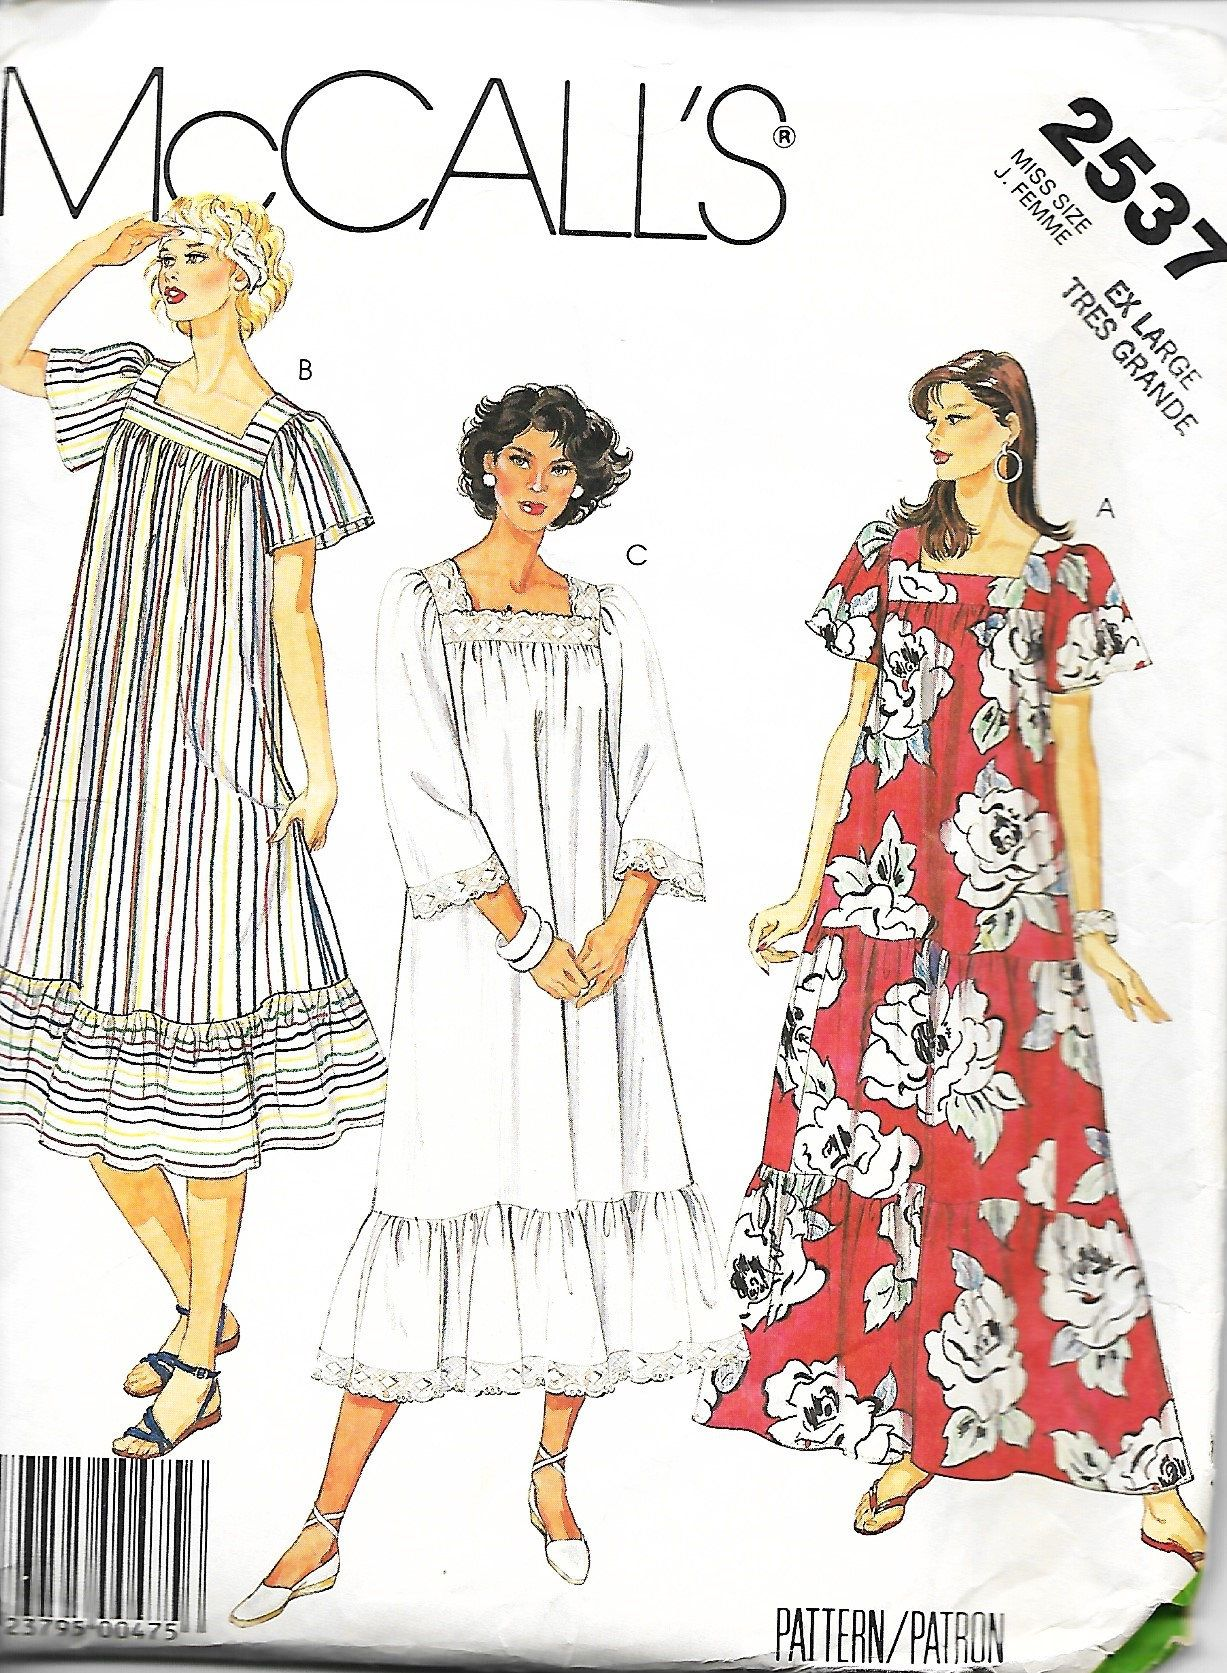 Muumuu Dress Patterns : muumuu, dress, patterns, Dresses, Ideas, Dresses,, Clothing, Patterns,, Vintage, Sewing, Patterns